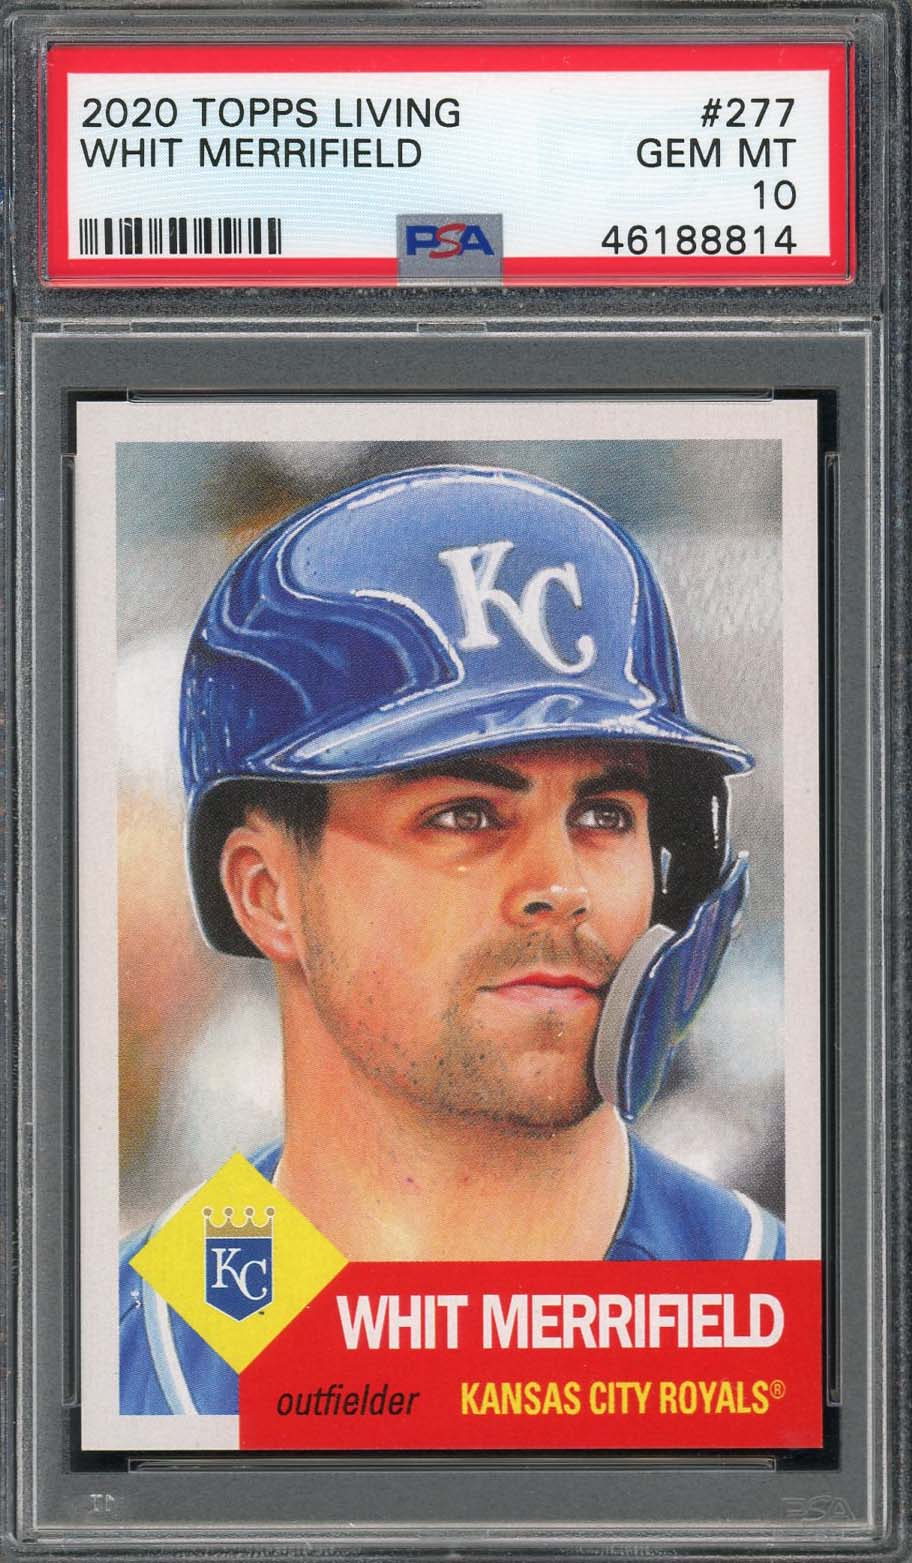 Whit Merrifield Kansas City Royals 2020 Topps Living Baseball Card #277 Graded PSA 10 GEM MINT-Powers Sports Memorabilia